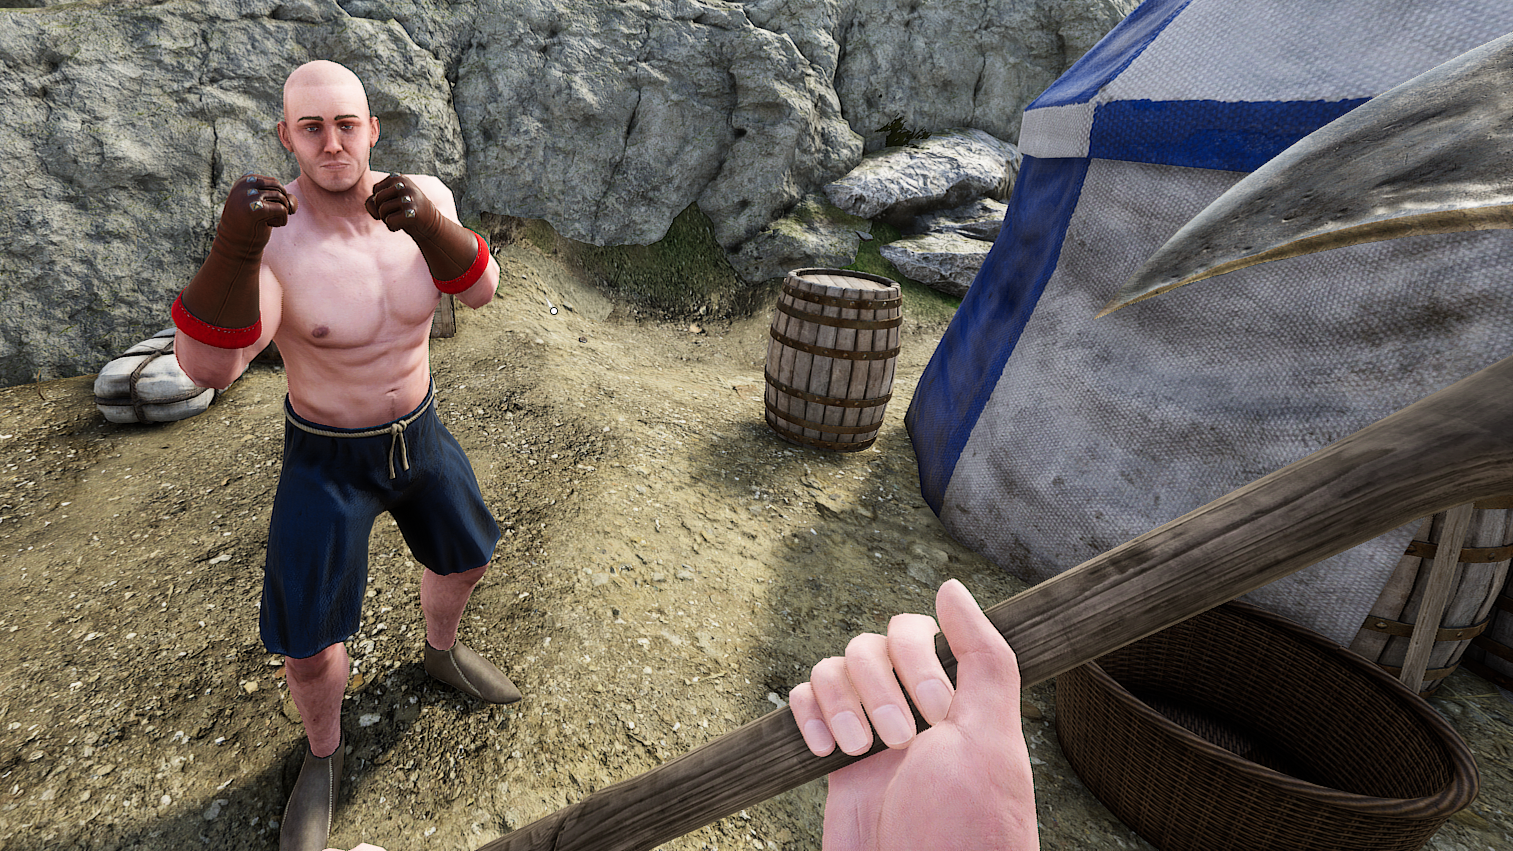 Mordhau Players Have A More Ridiculous Time By Ignoring All The Rules